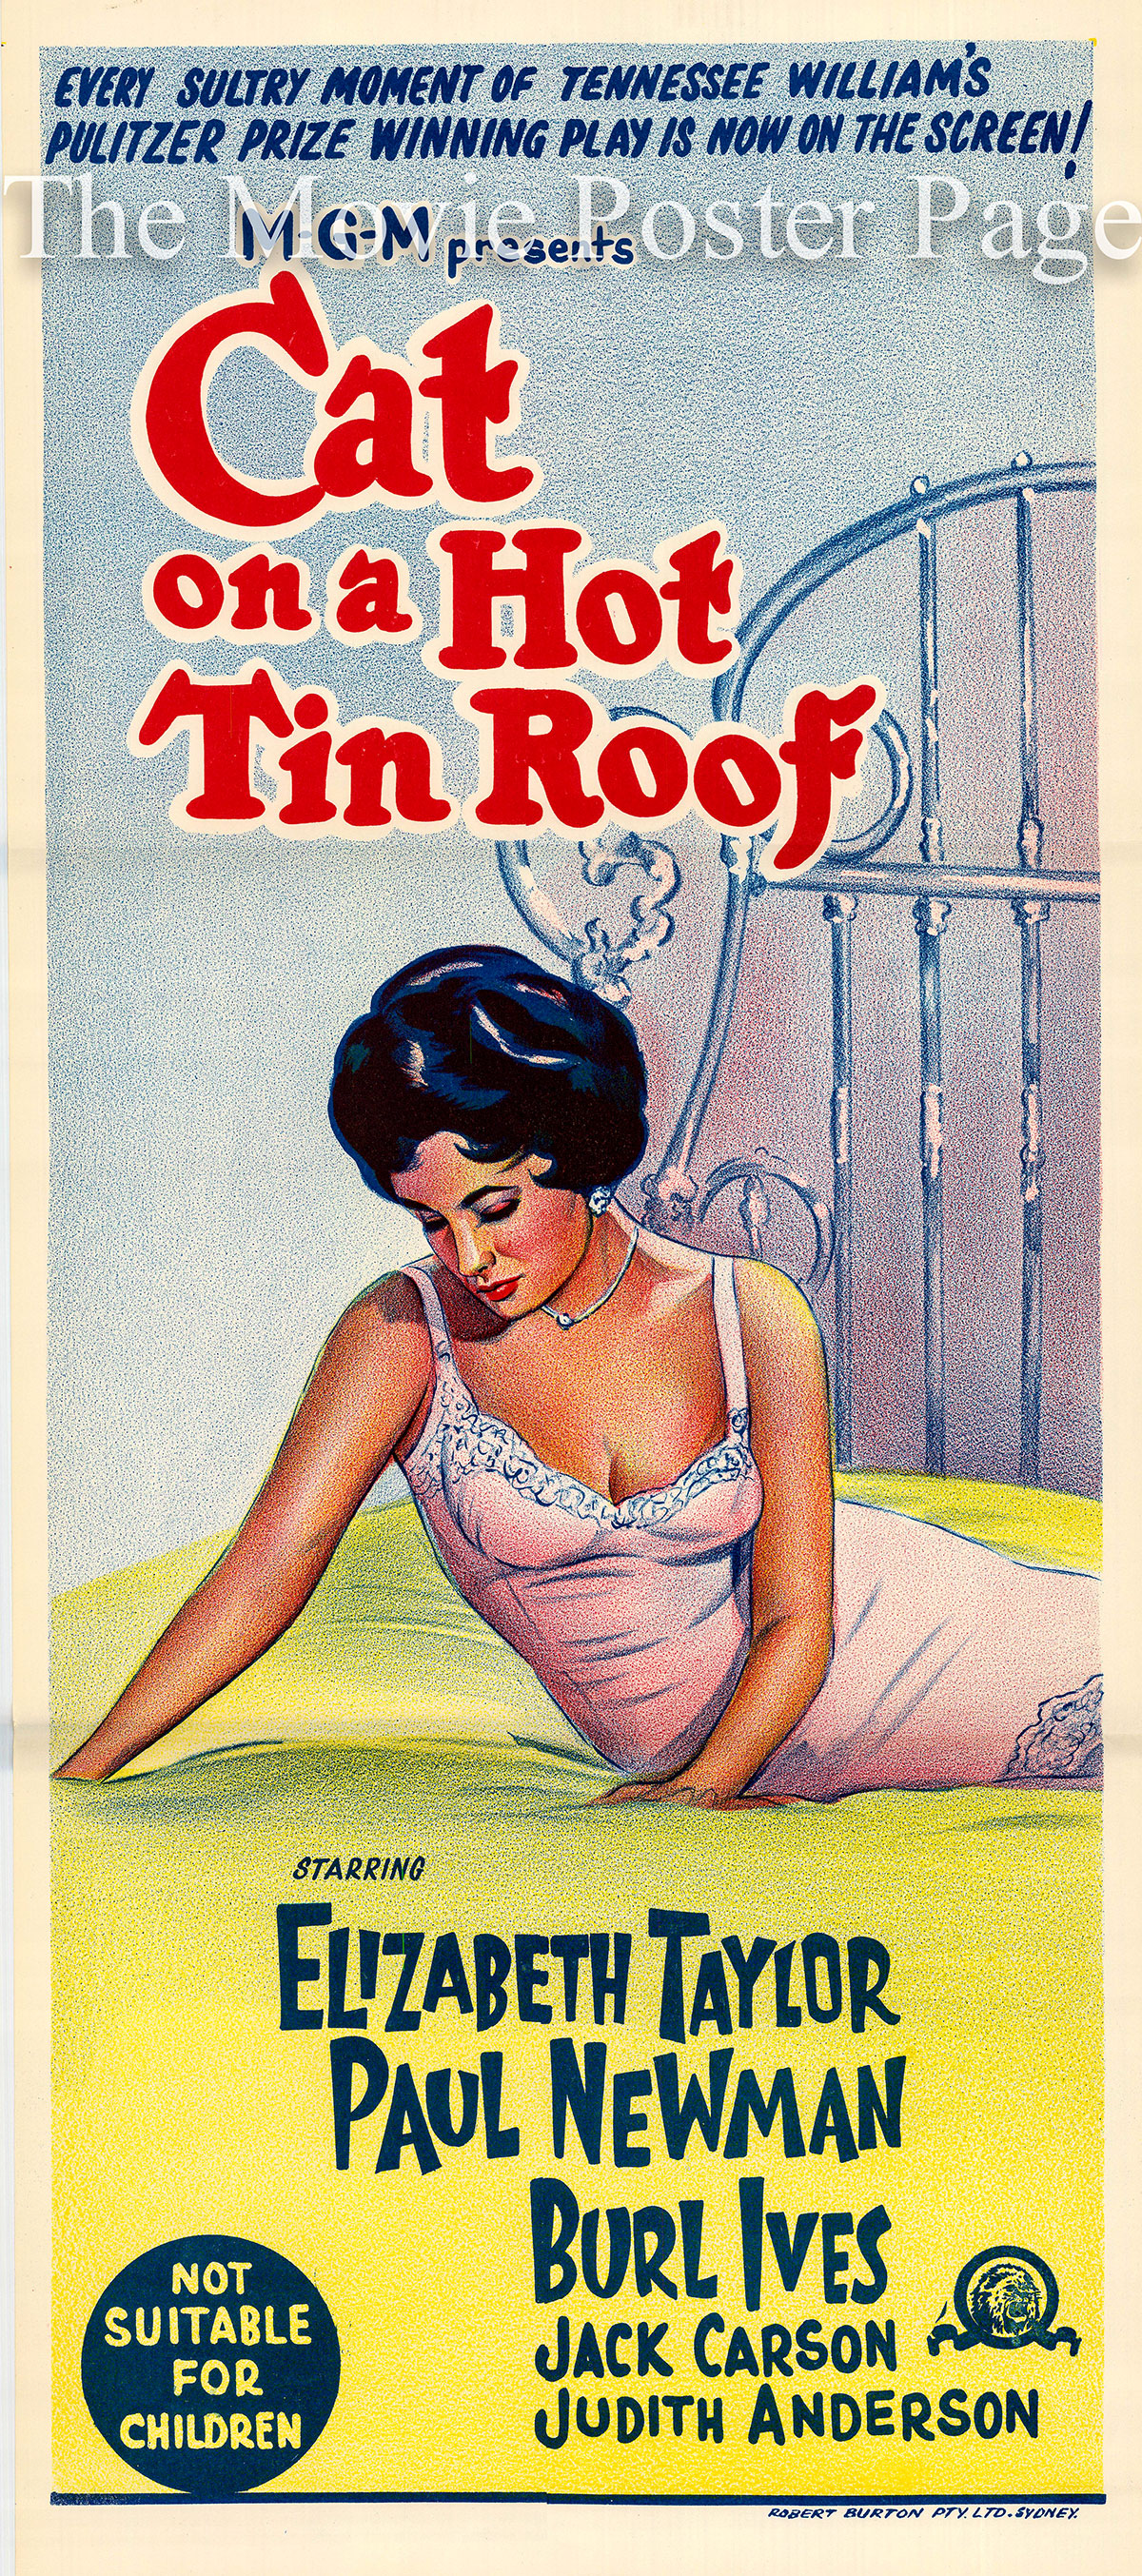 Pictured is an Australian daybill poster for the 1958 Richard Brooks film Cat on a Hot Tin Roof starring Elizabeth Taylor.